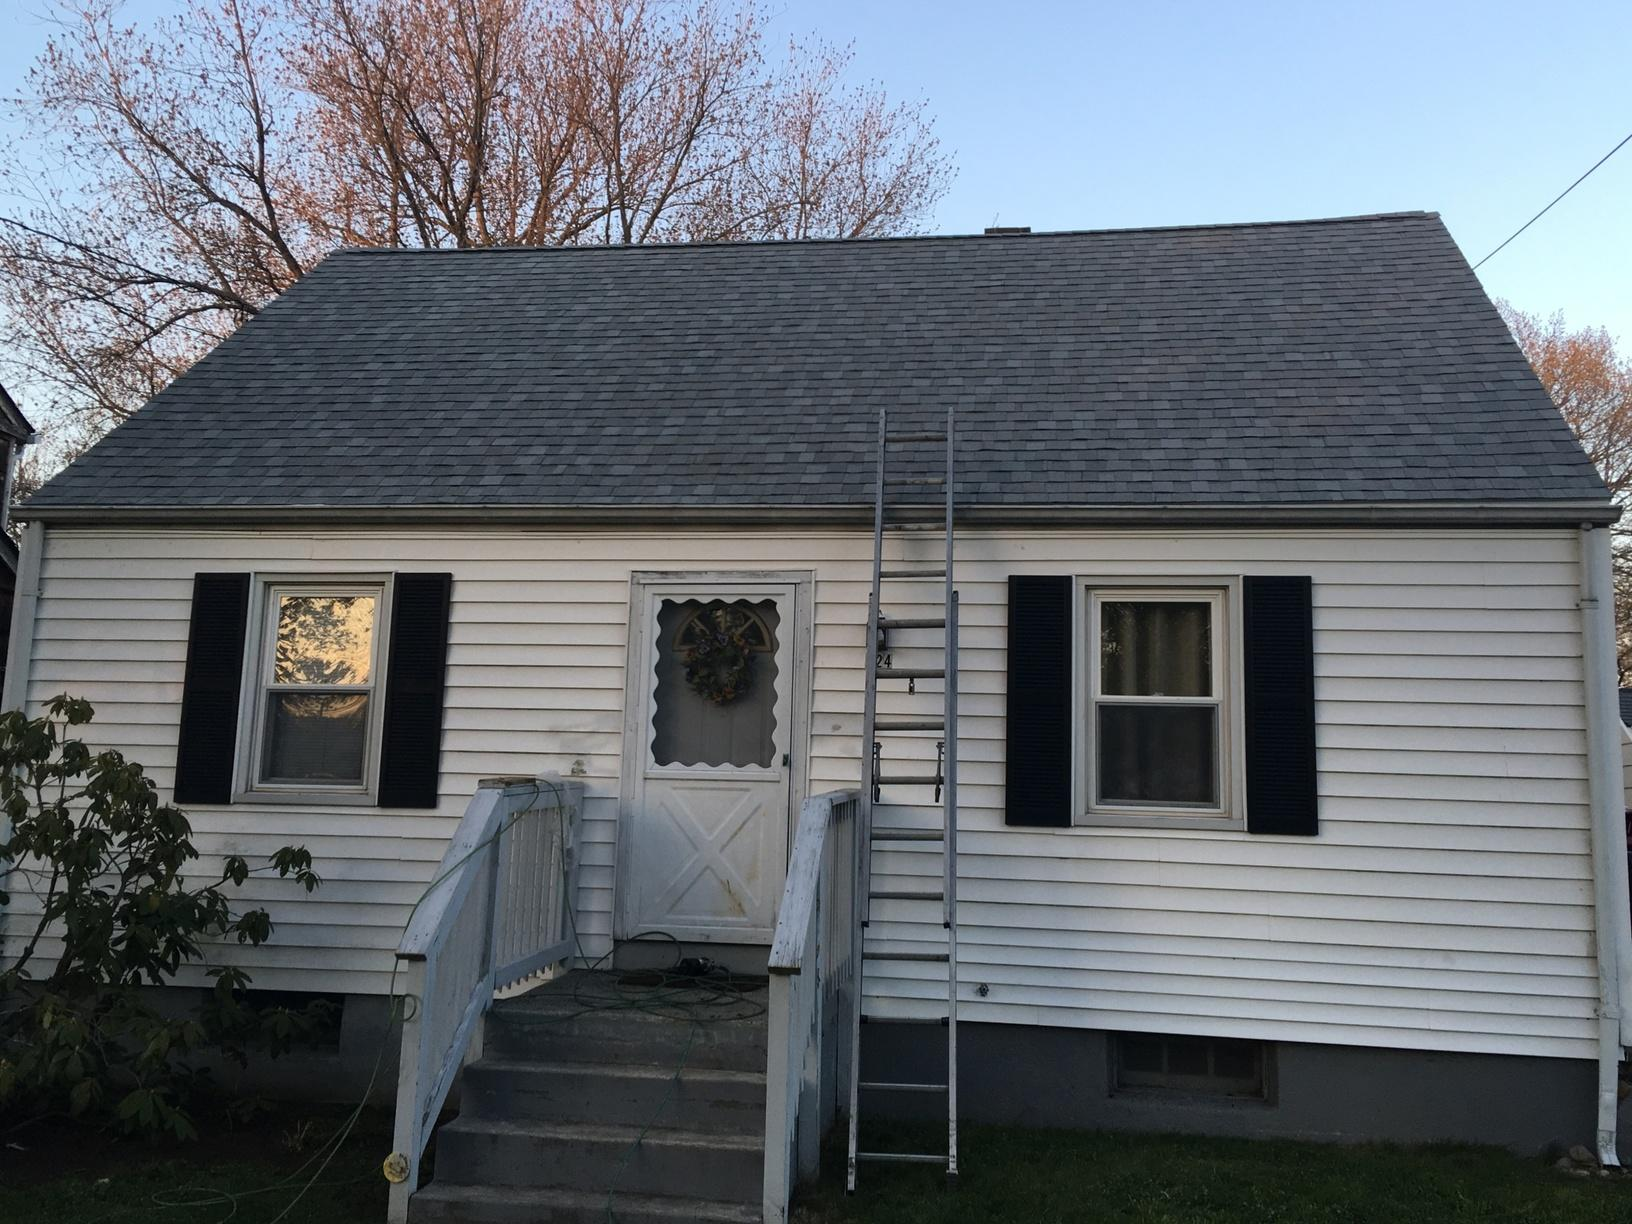 Milford CT - Wind Damaged Roof (Rivercliff Dr) - After Photo